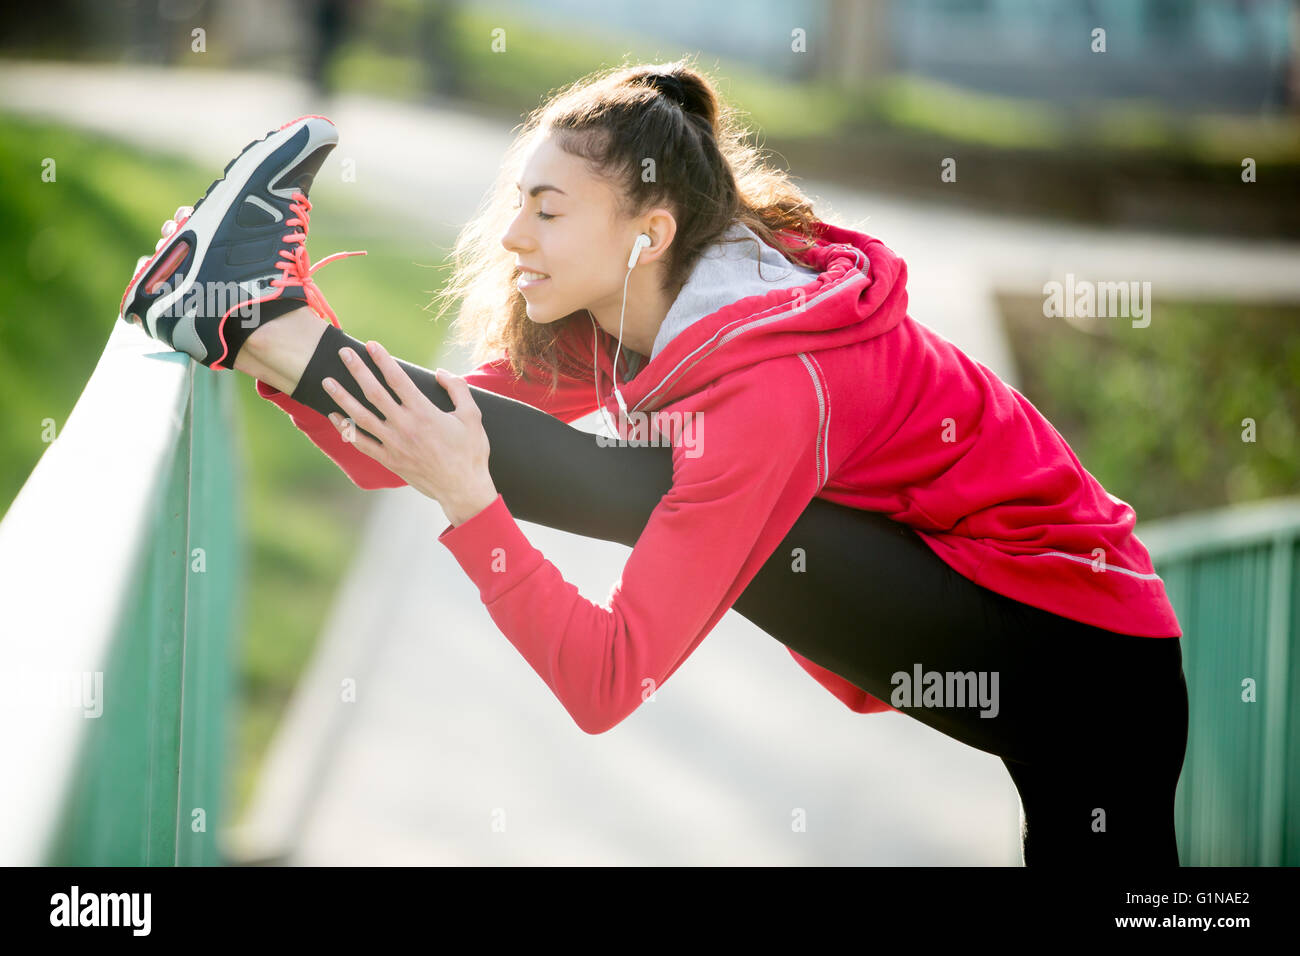 Profile portrait of sporty woman doing hamstring stretch in park after jogging. Female athlete runner getting ready - Stock Image